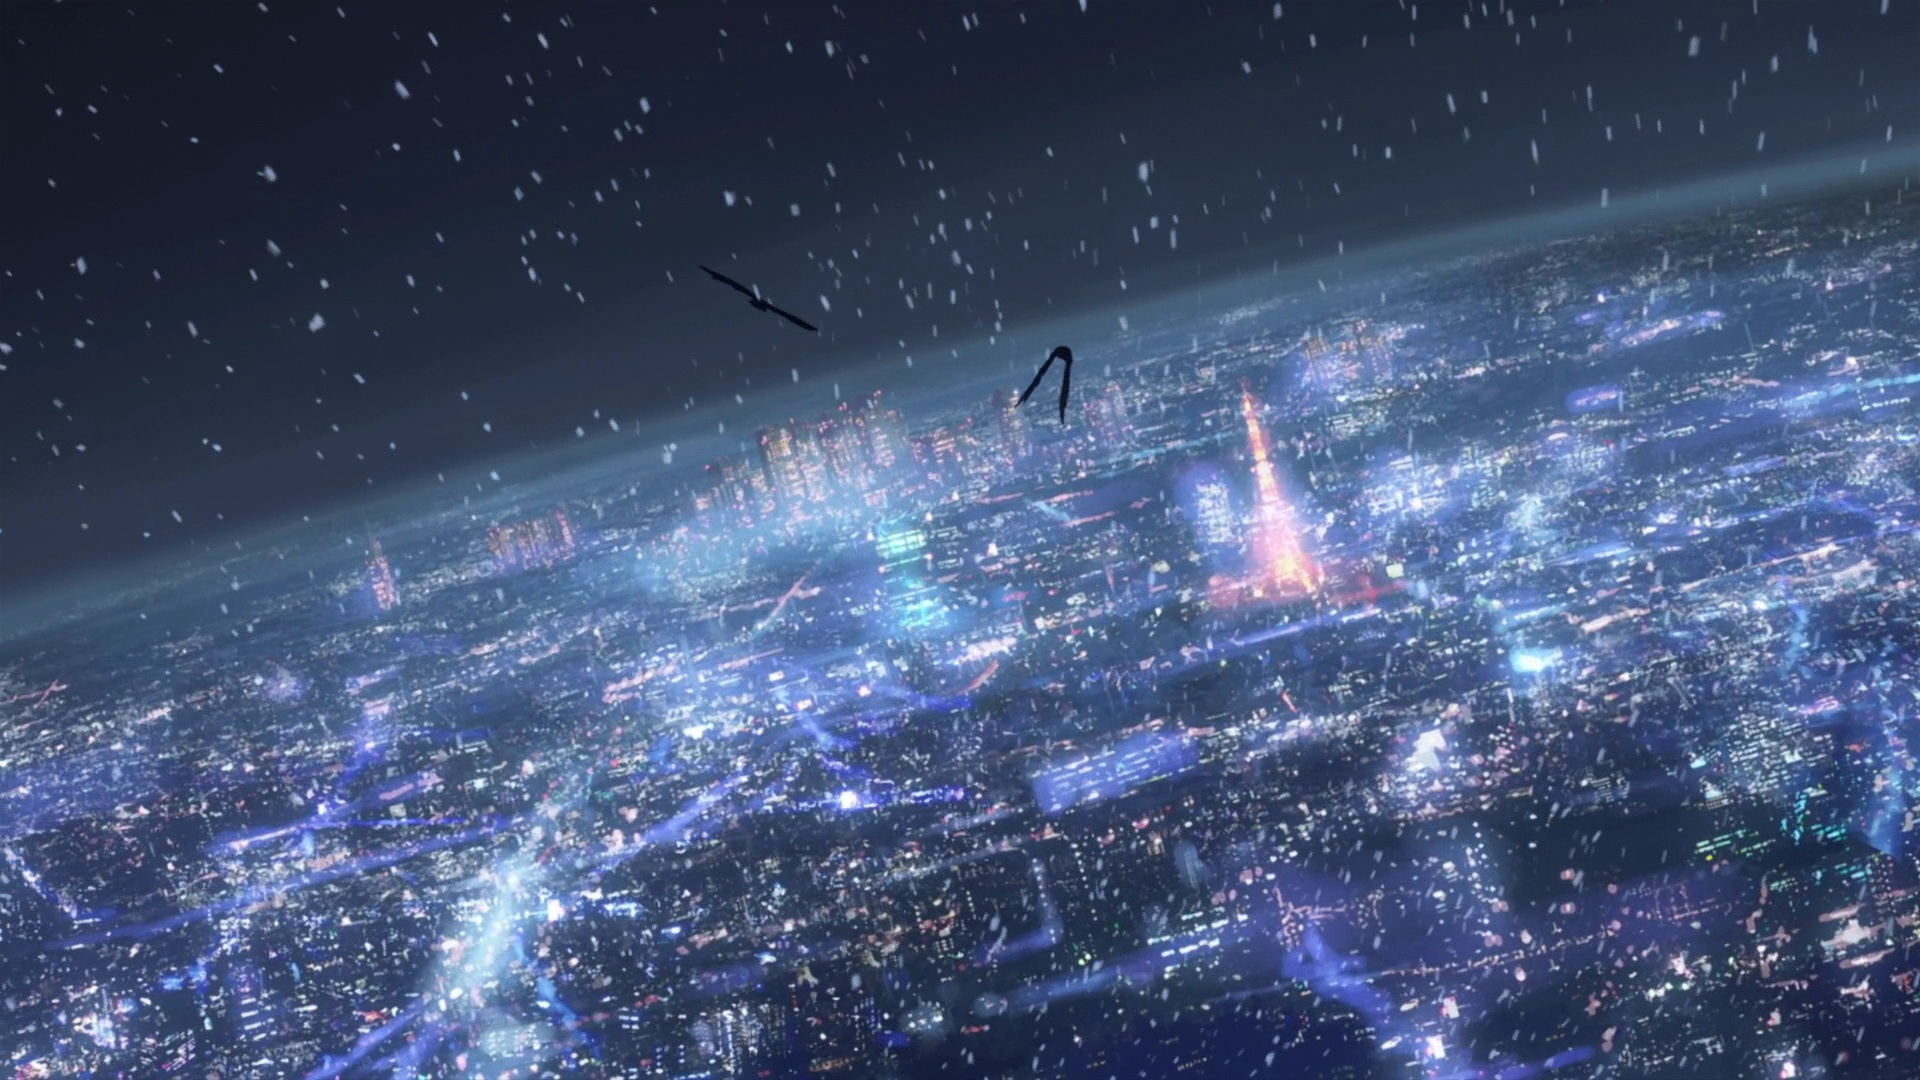 5 Centimeters Per Second Full HD Wallpaper and Background ...